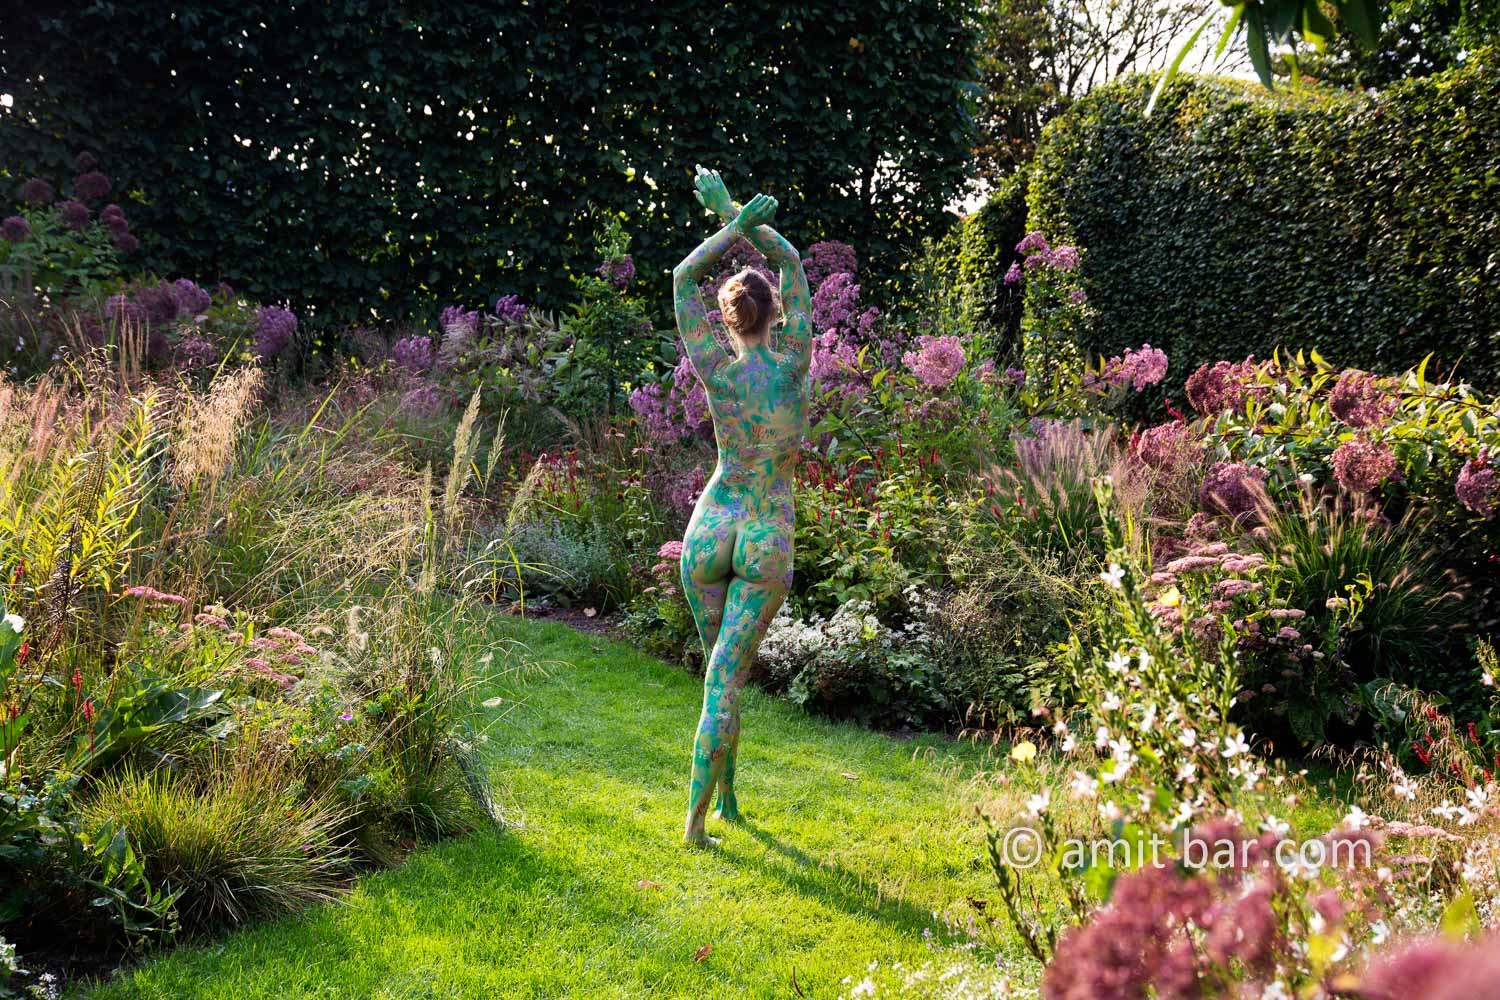 Garden flowers I: A body painted model is walking on a cloudy afternoon among the flowers of a beautiful garden in De Achterhoek, The Netherlands.